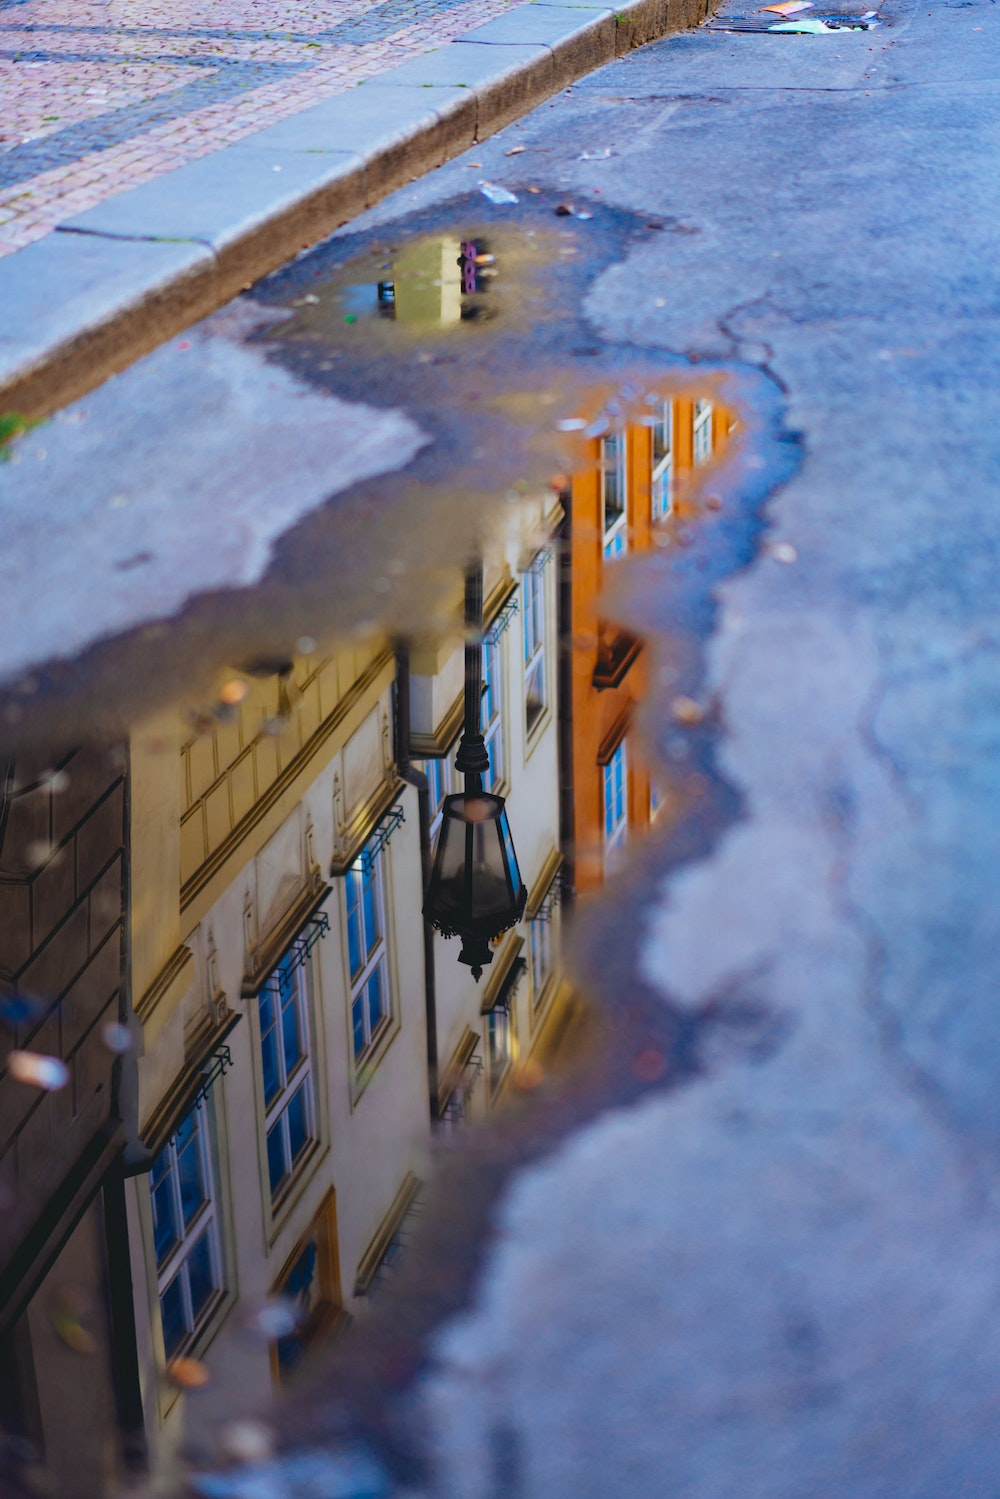 Reflection in water of Prague Old Town buildings